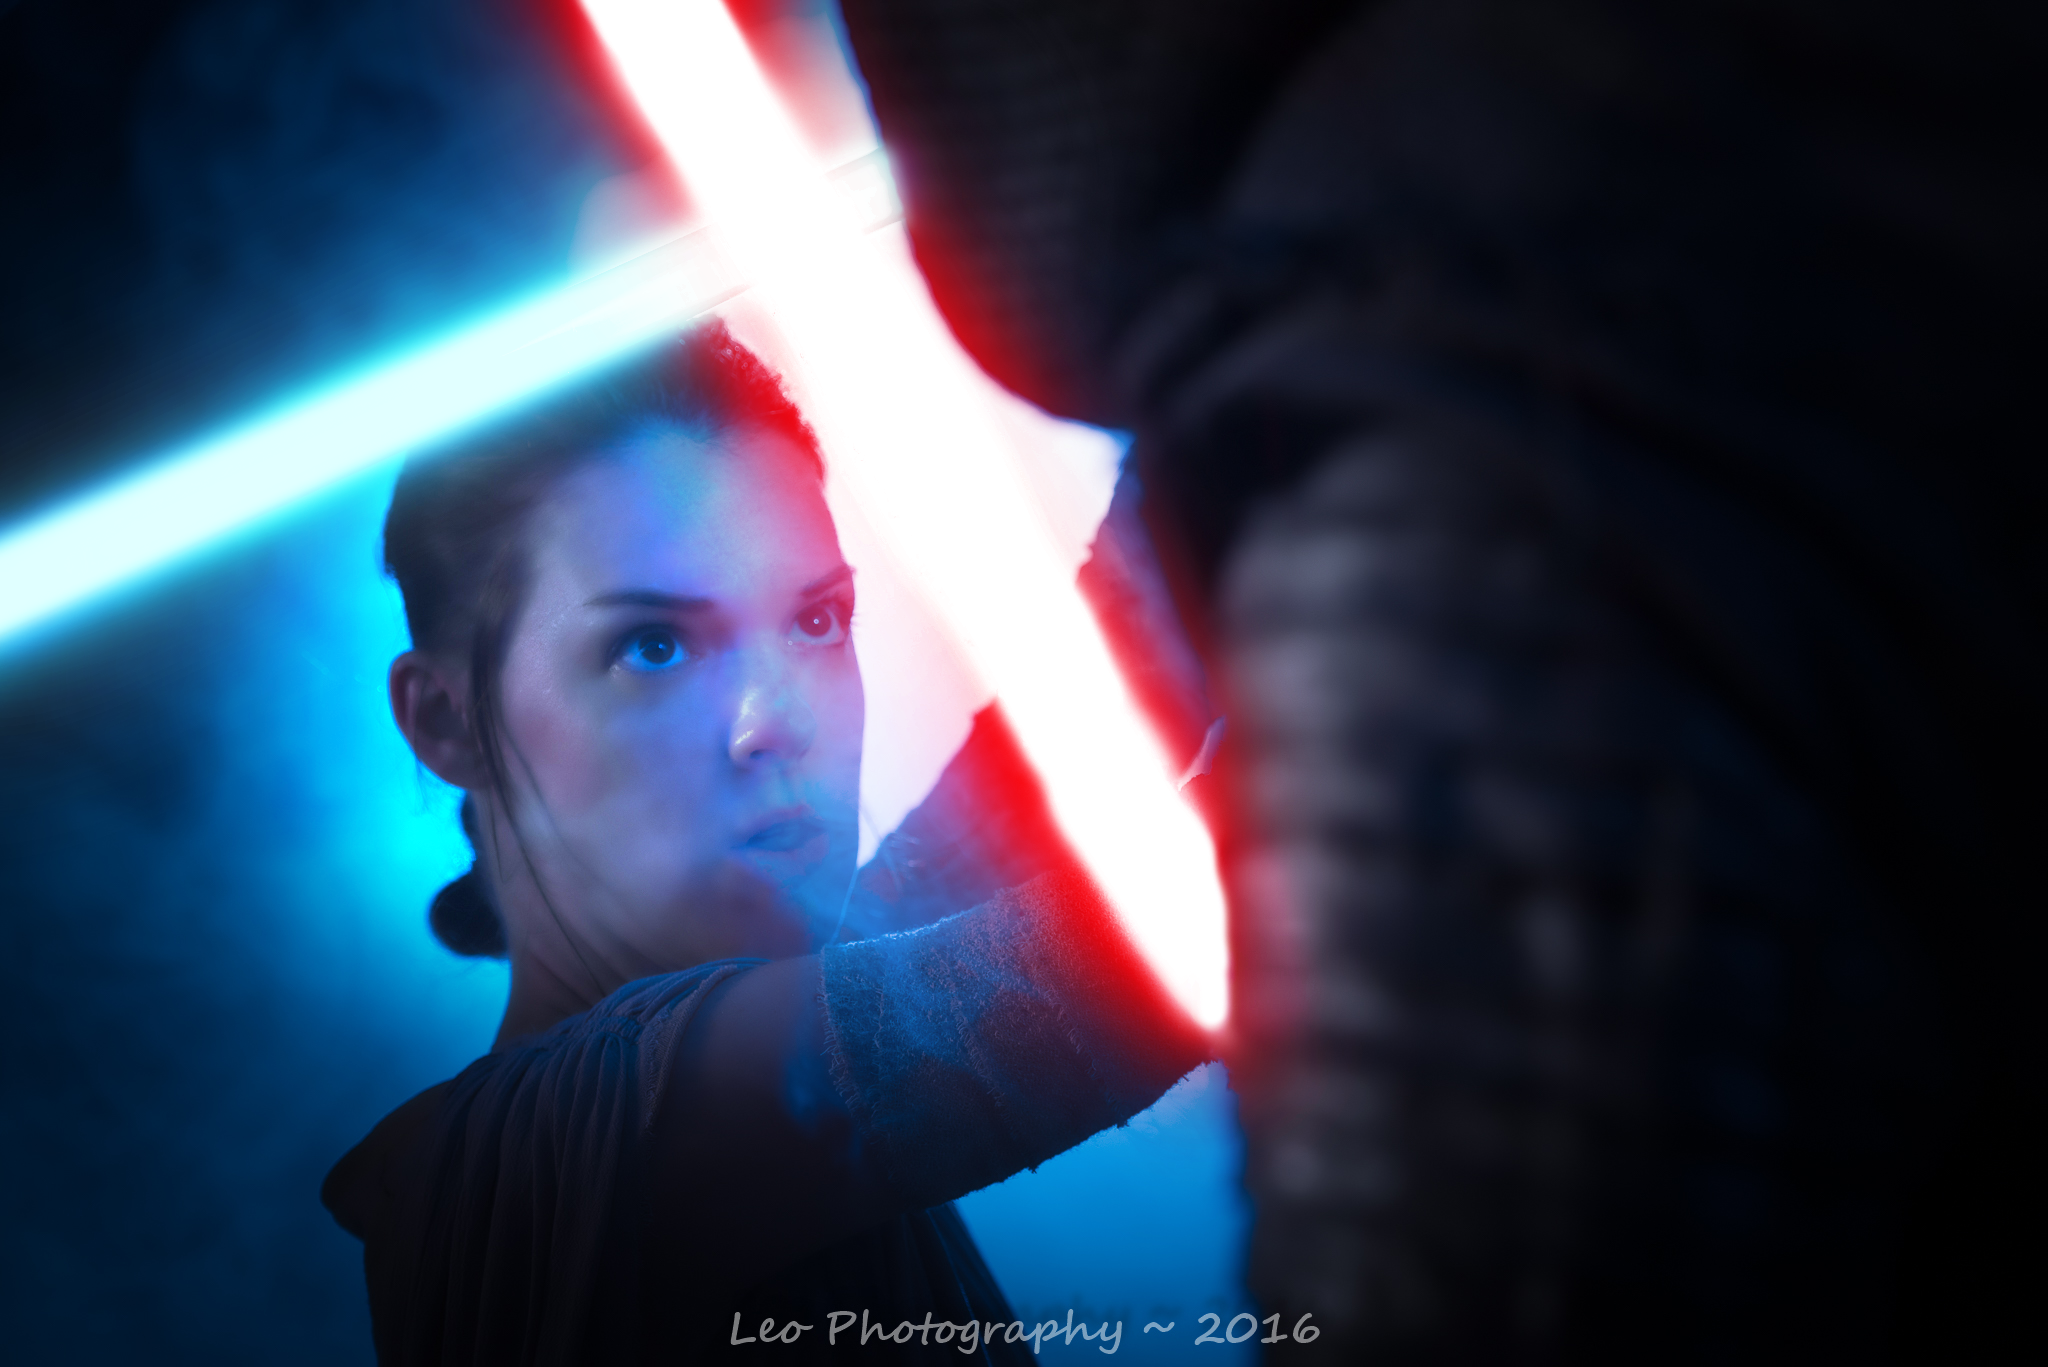 Rey with Lightsaber. Rey by The Lady Nerd. Photography by David Leo